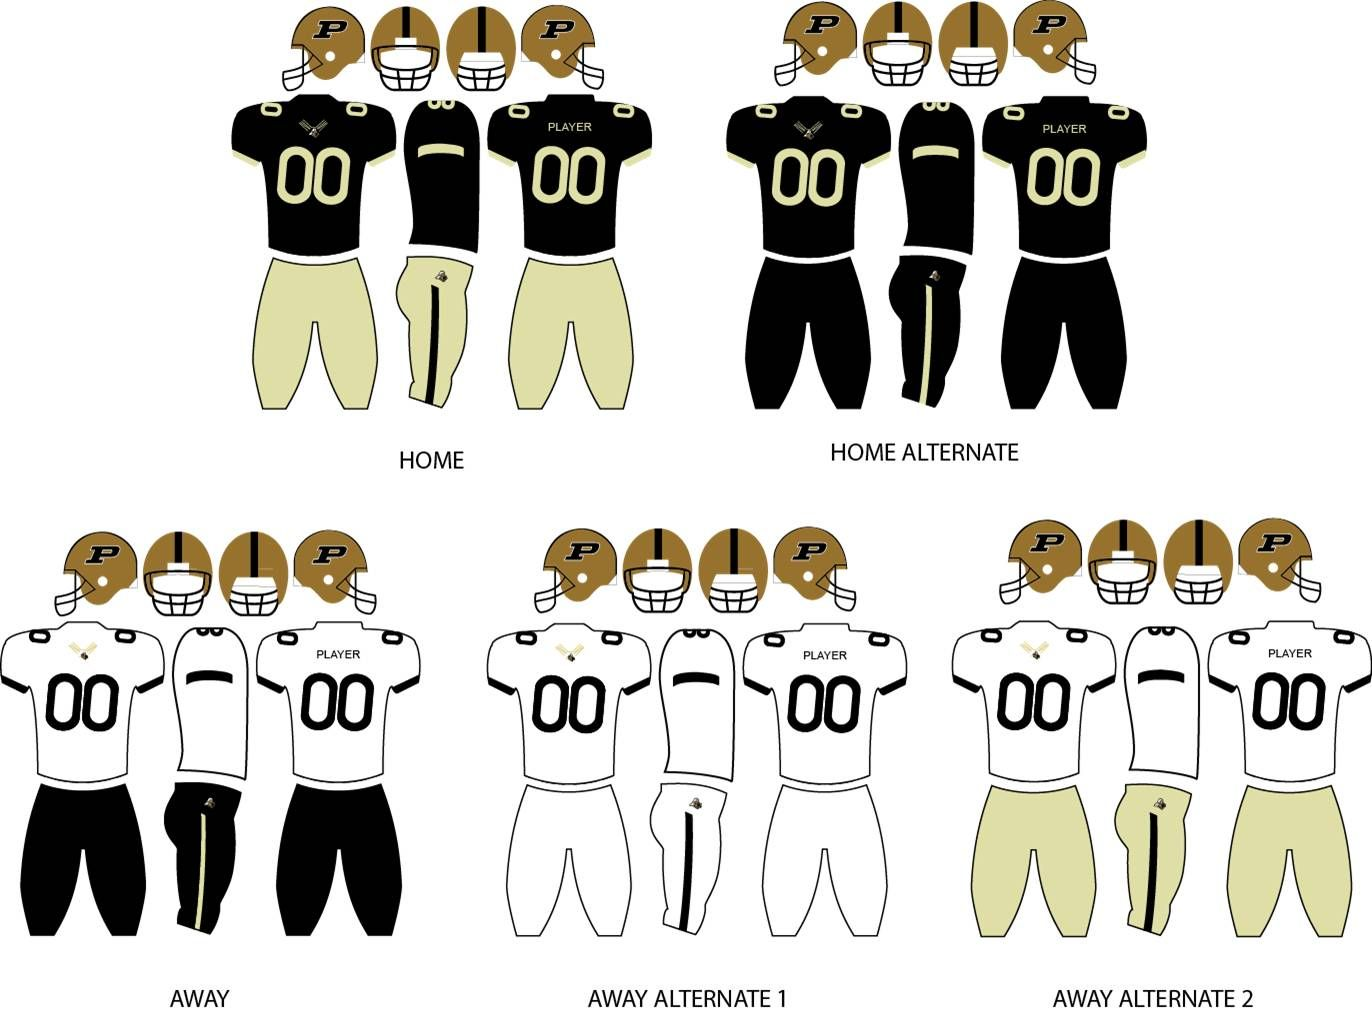 Purdue Boilermakers Football Team Uniforms Purdue Boilermakers Football Purdue Purdue Boilermakers